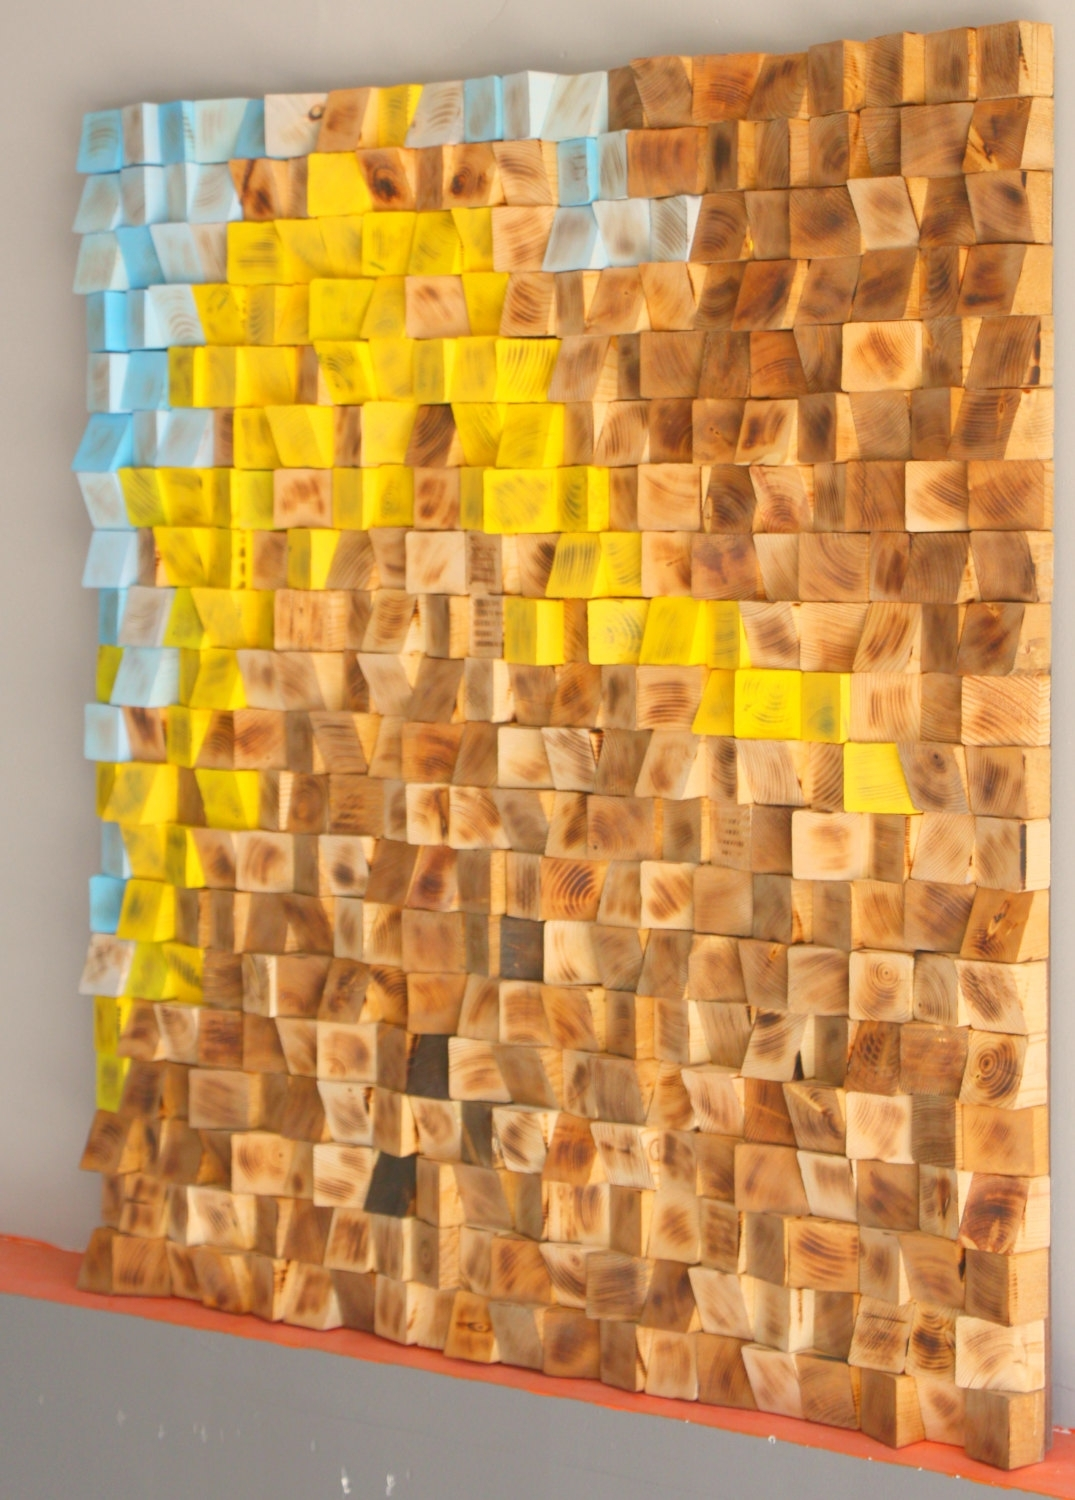 Buy Reclaimed Wood Wall Art, Wood Mosaic, Geometric Art, Wood Wall Throughout Most Popular Geometric Wall Art (View 6 of 20)